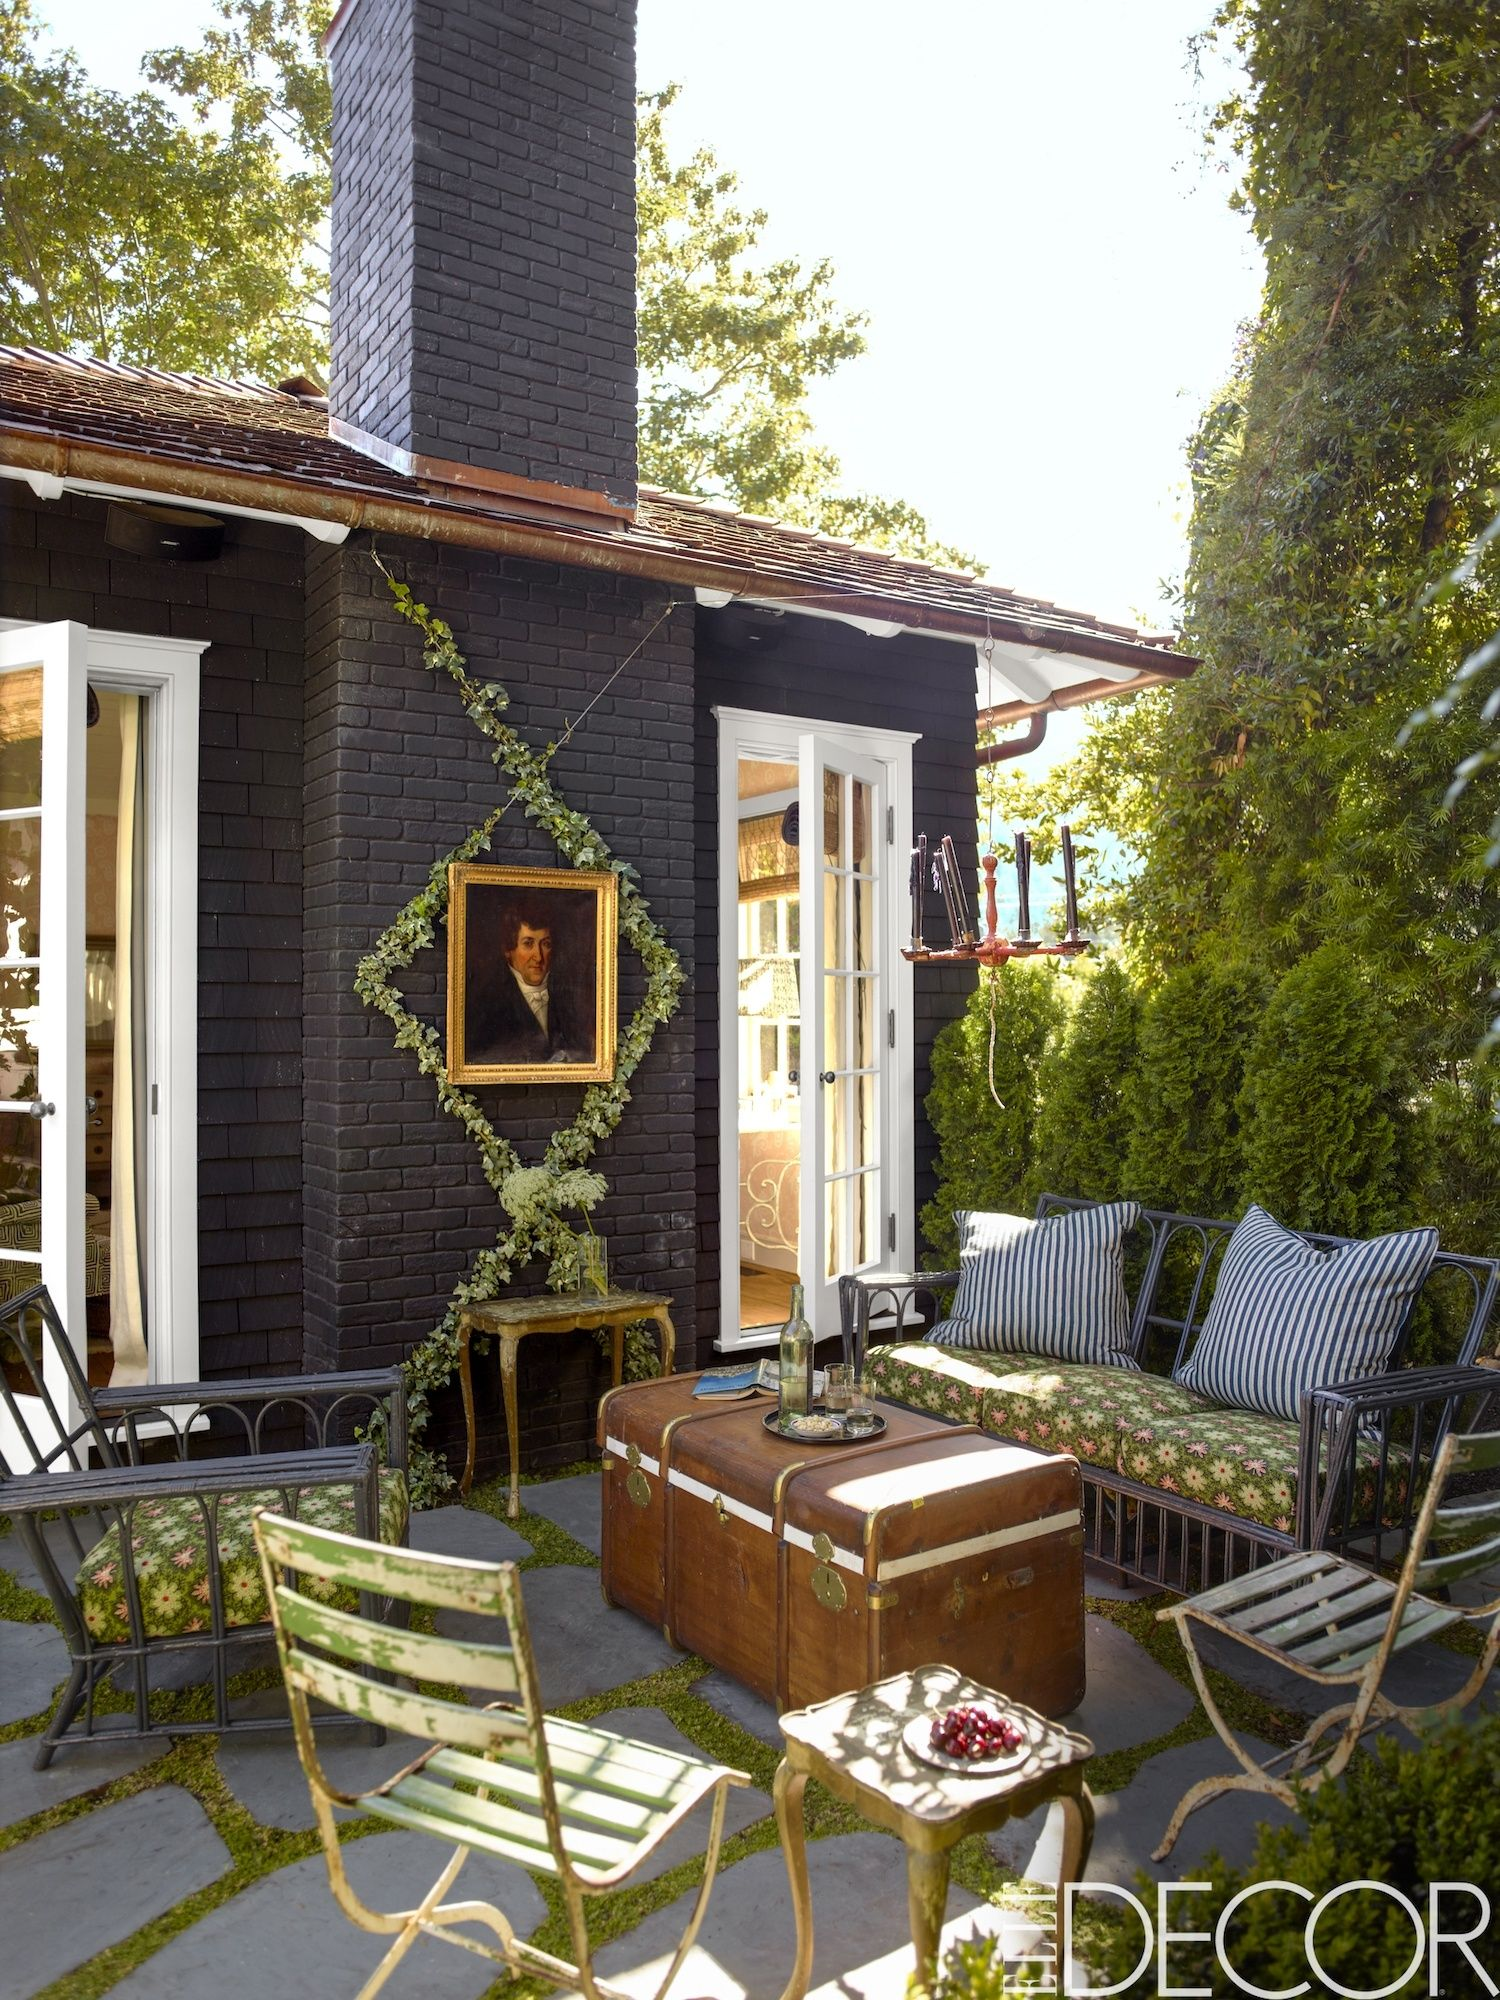 ideas geniales para decorar patios terrazas y porches